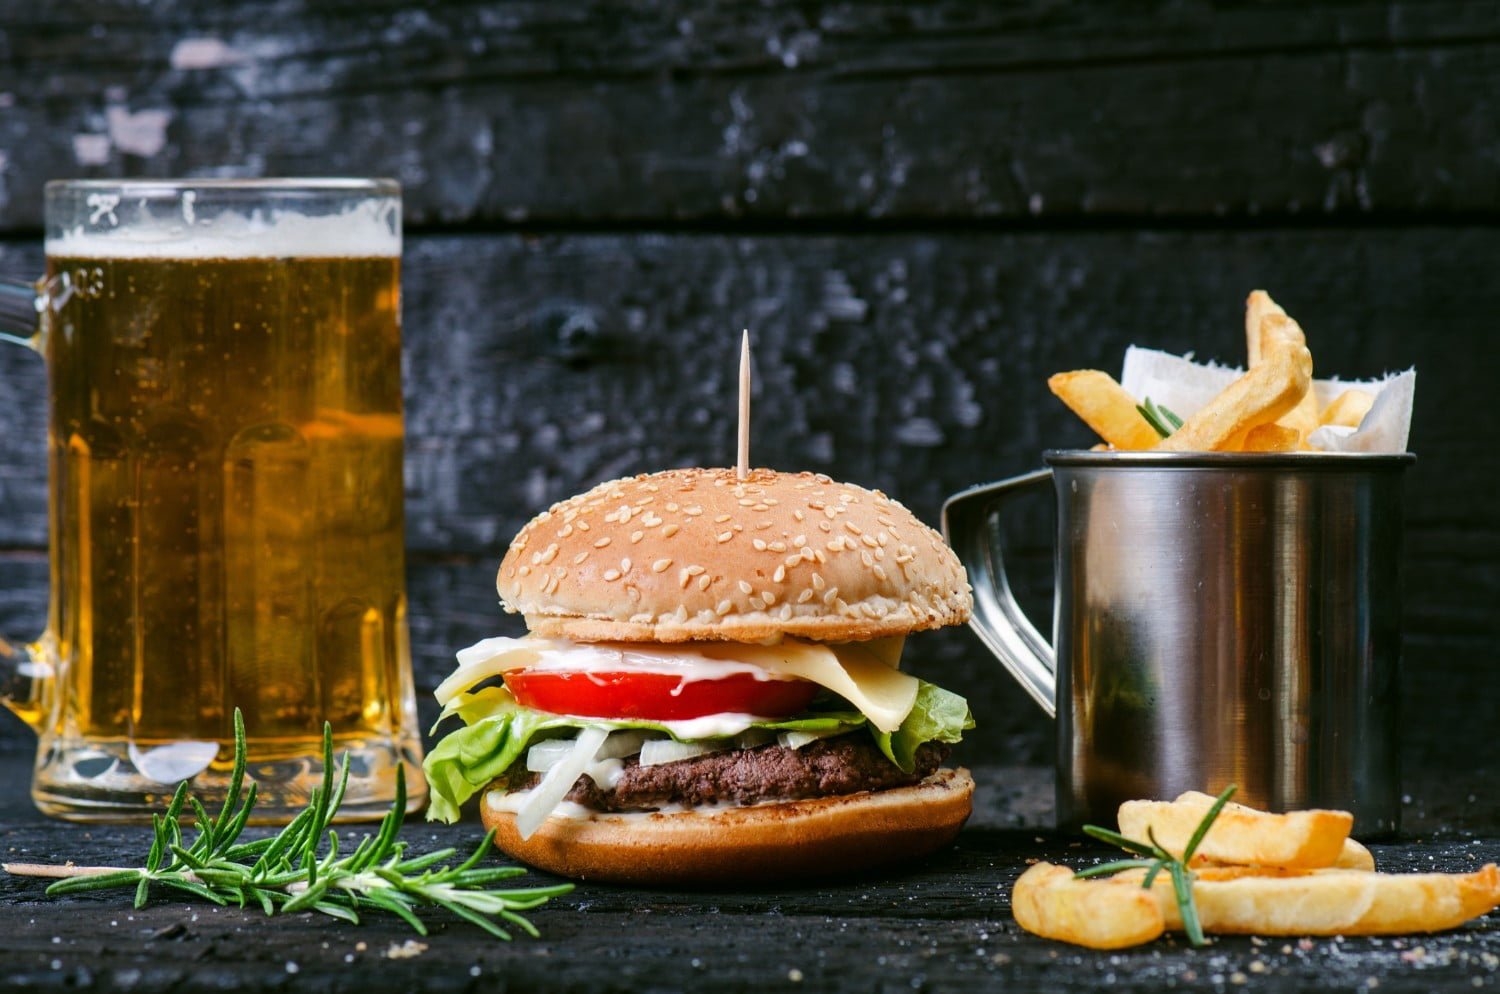 Burger, fries, and beer.